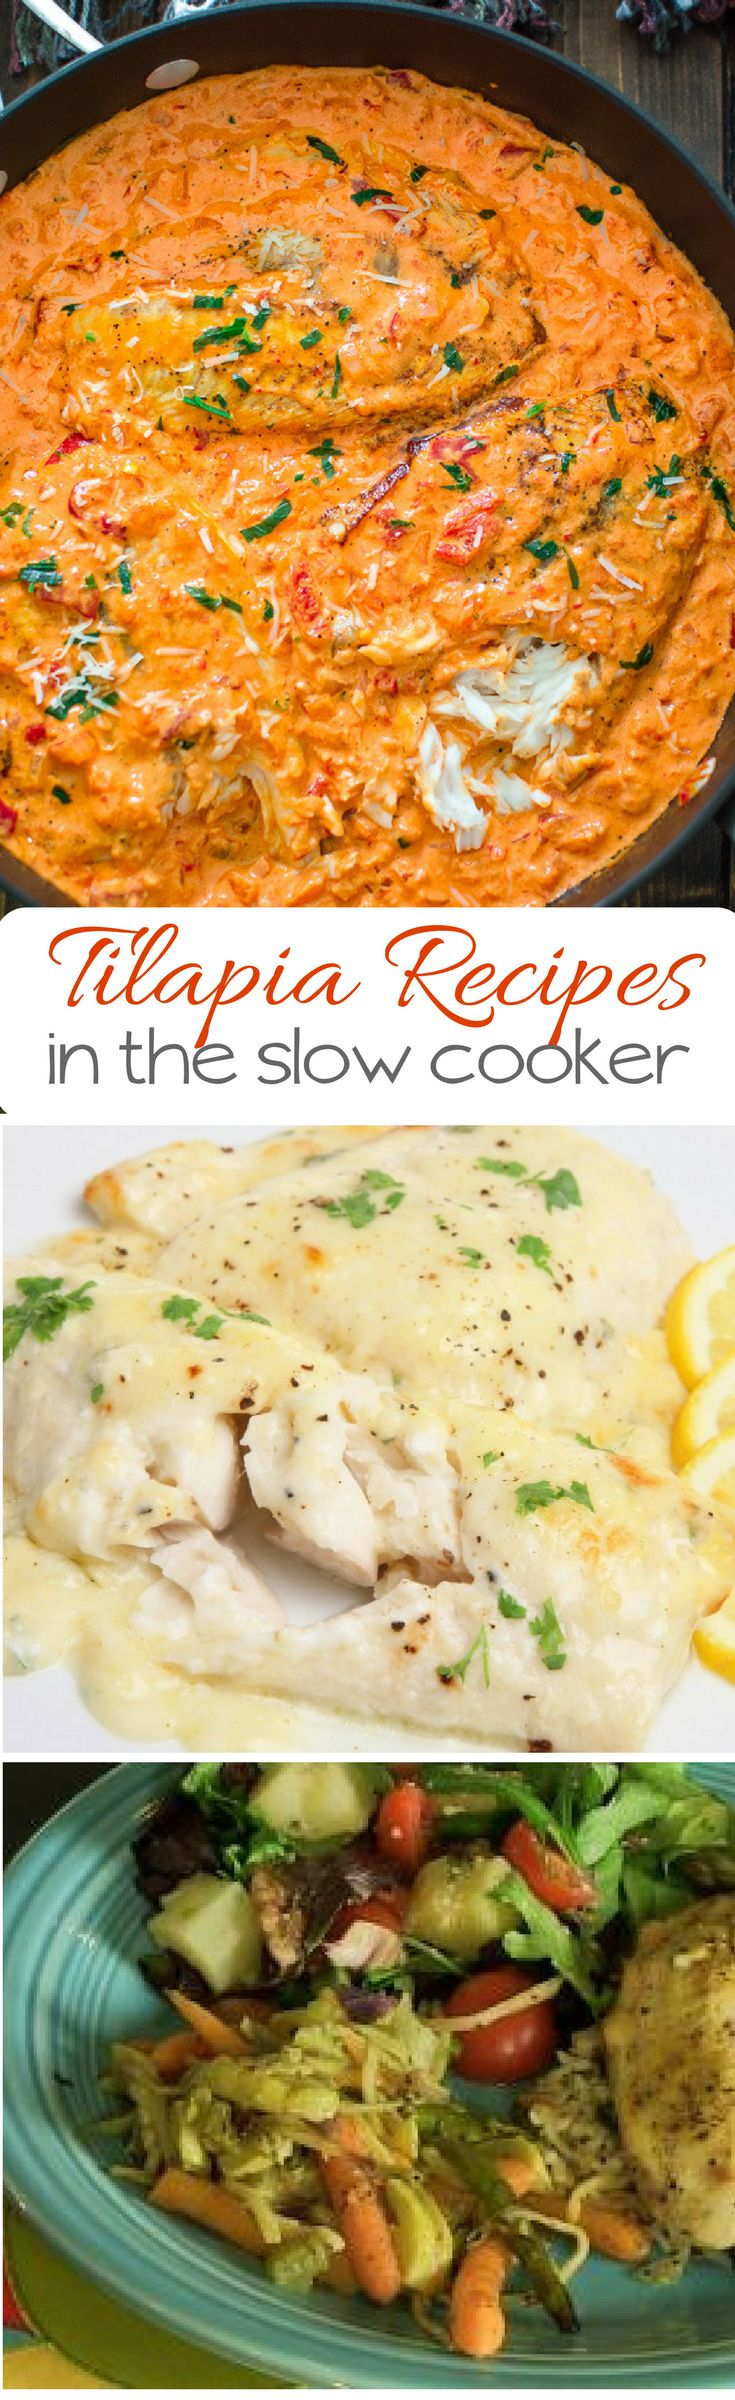 These Easy Crockpot Tilapia Recipes fit the healthy eating bill, but the ease of a slow cooker.    #tilapiarecipe #crockpotrecipes #healthyrecipes